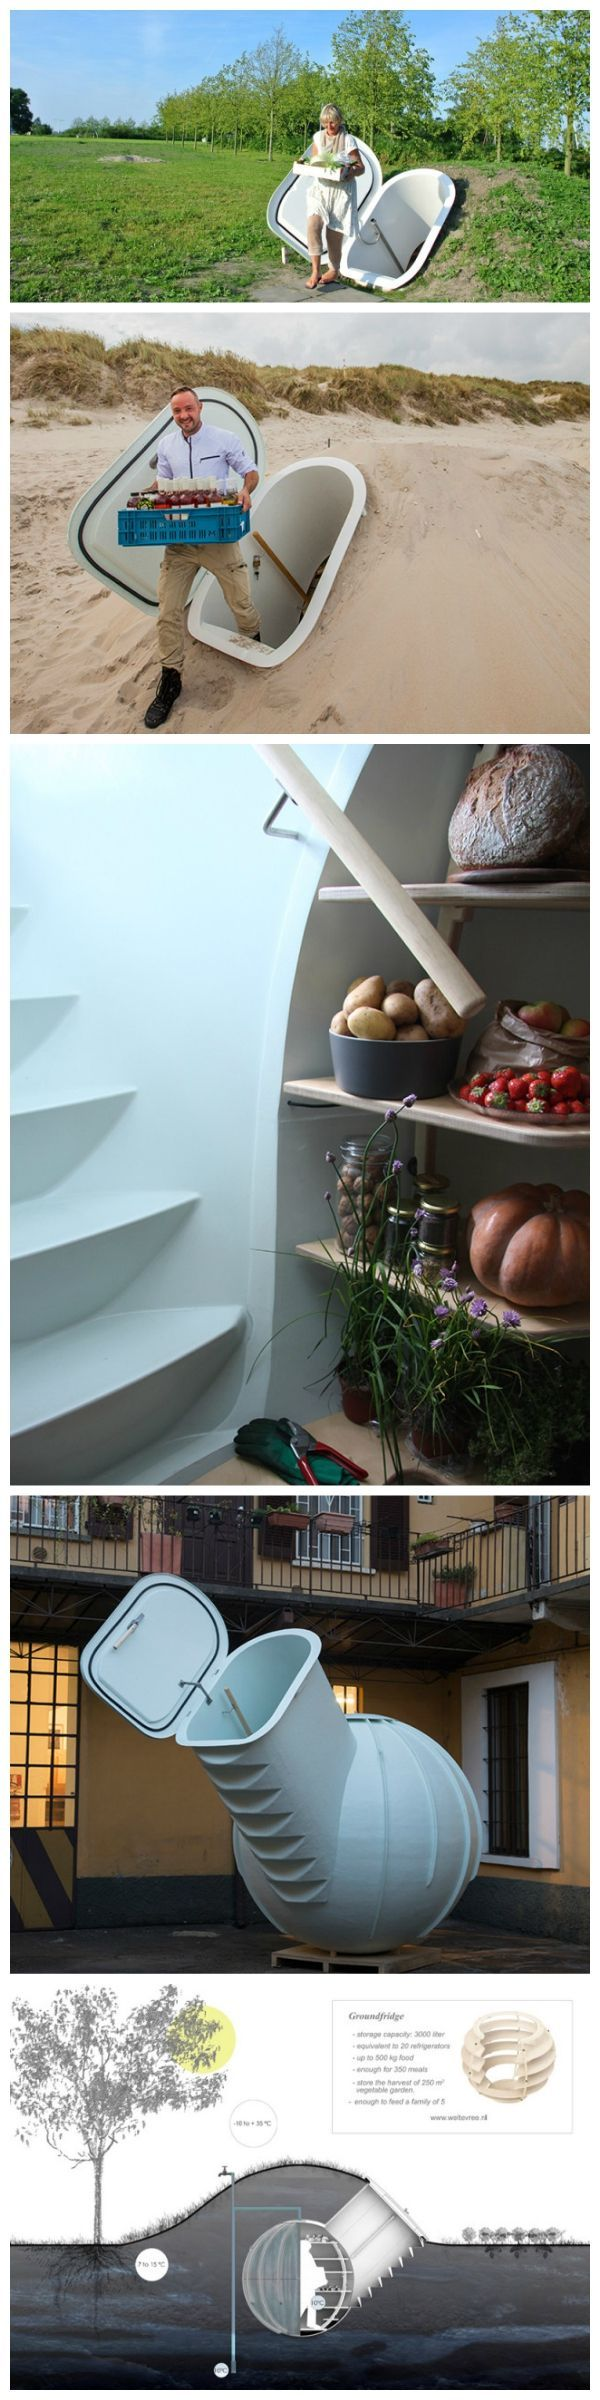 The Groundfridge: the best solution for off-grid food storage